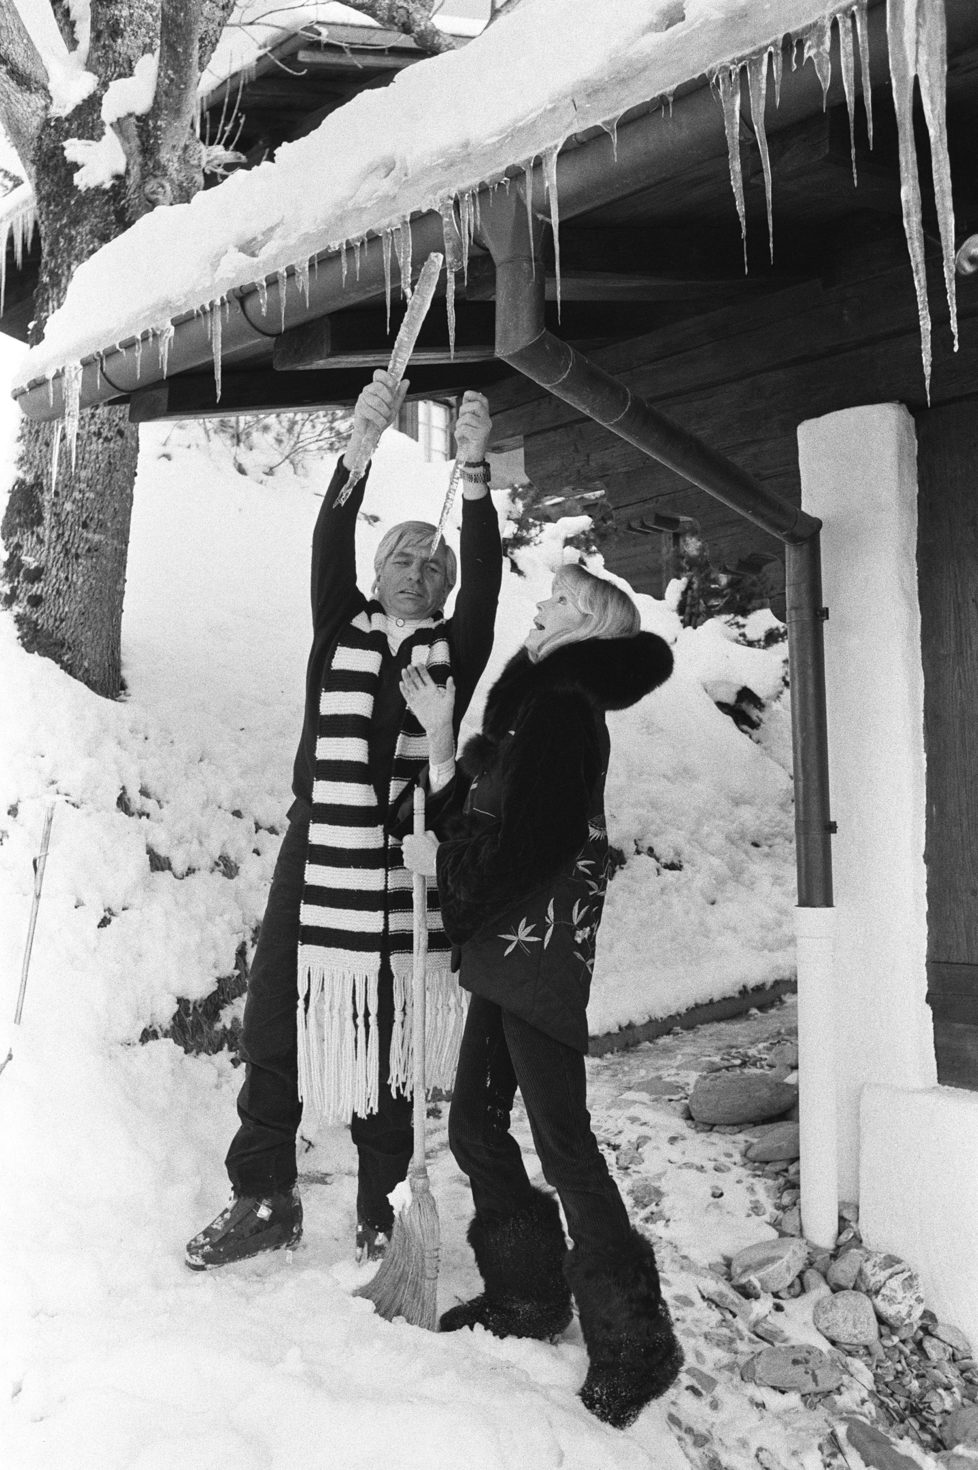 Gstaad,SWITZERLAND - DECEMBER 28: Gunther Sachs and his wife Mirja on winter holidays in Gstaad in 1979(Photo by Bertrand LAFORET/Gamma-Rapho via Getty Images)